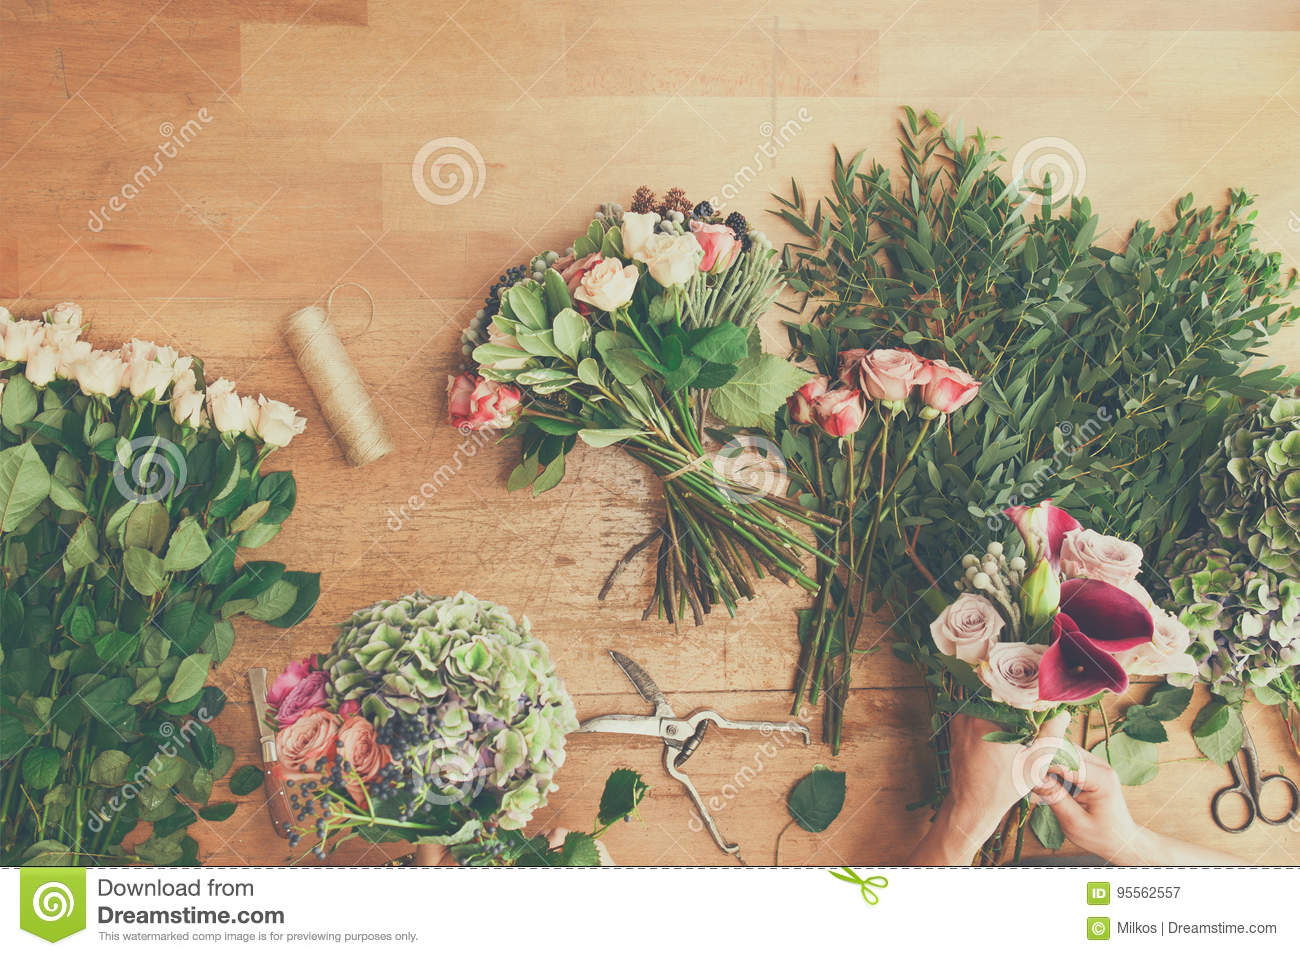 Florist in flower shop delivery make rose bouquet, table top view